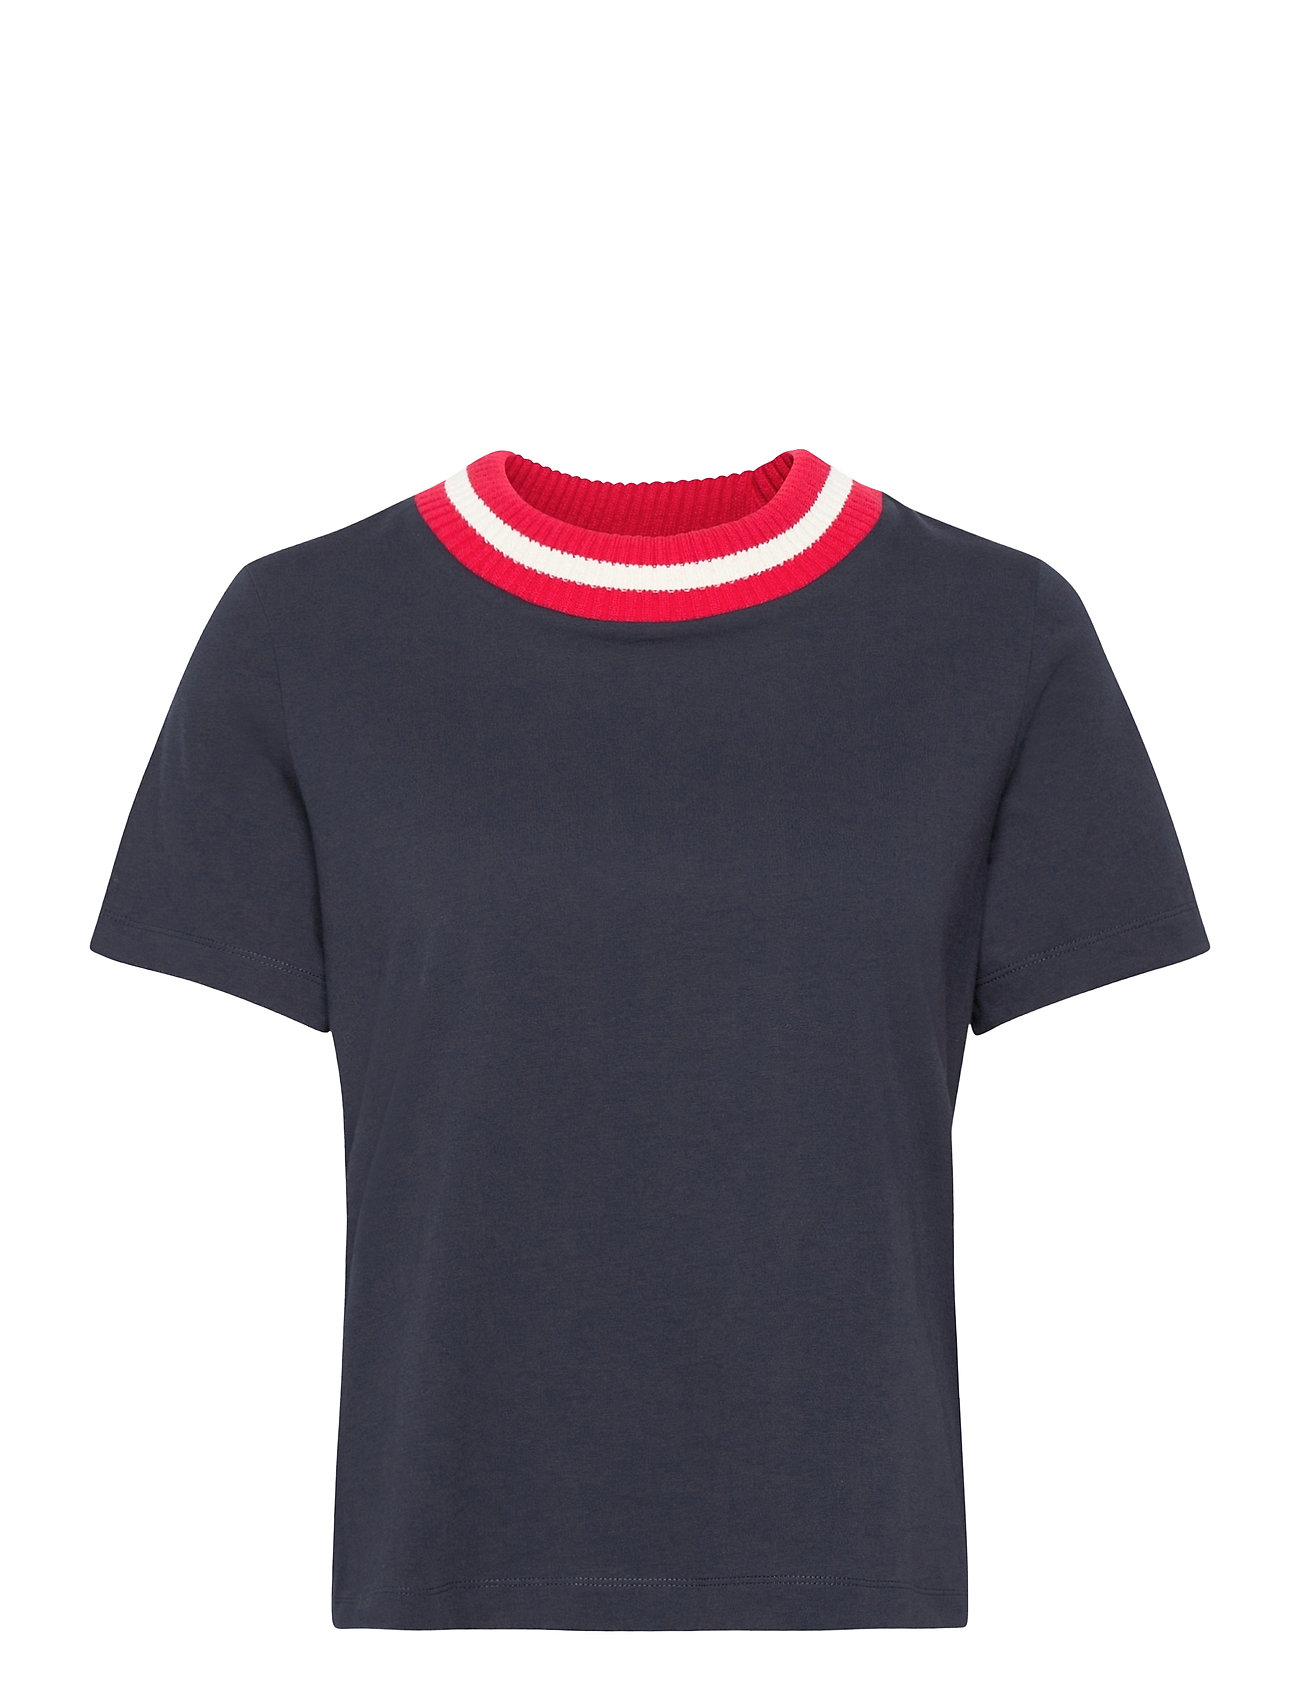 Image of Corrine Tee T-shirt Top Blå Morris Lady (3472686179)